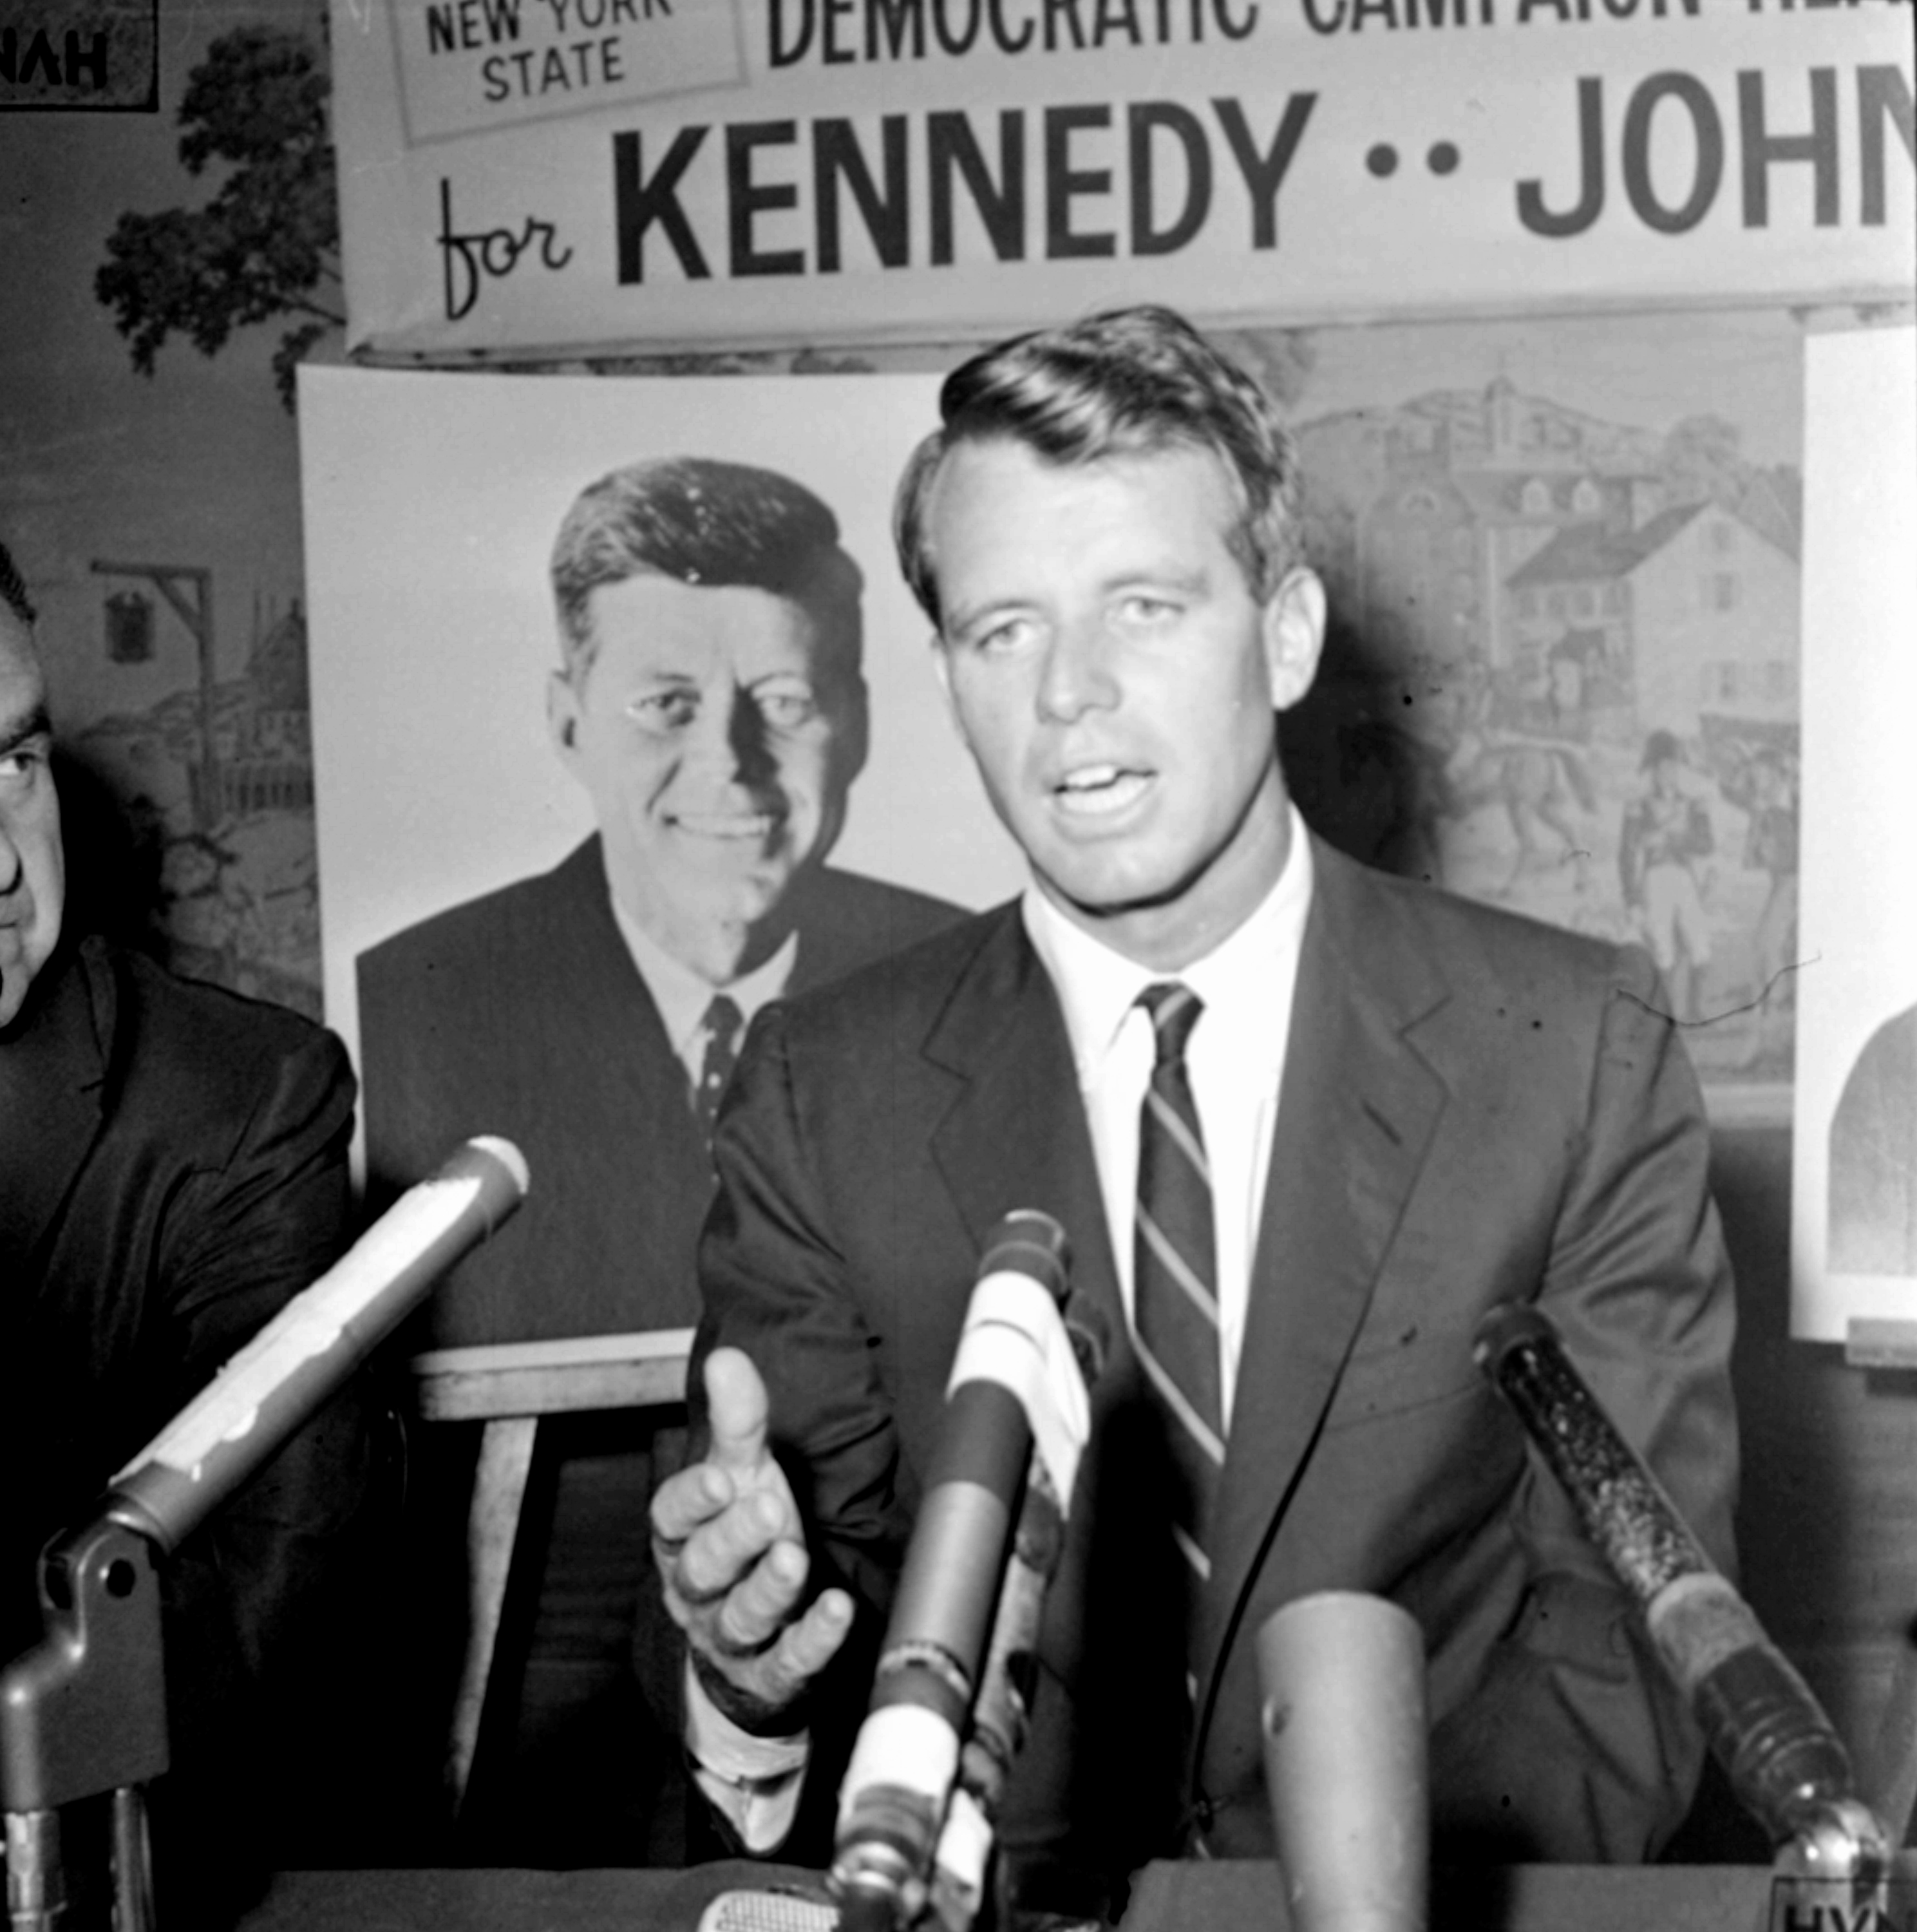 a biography of robert f kennedy a politician Robert f kennedy--biography of a compulsive politician - kindle edition by allen roberts download it once and read it on your kindle device, pc, phones or tablets.